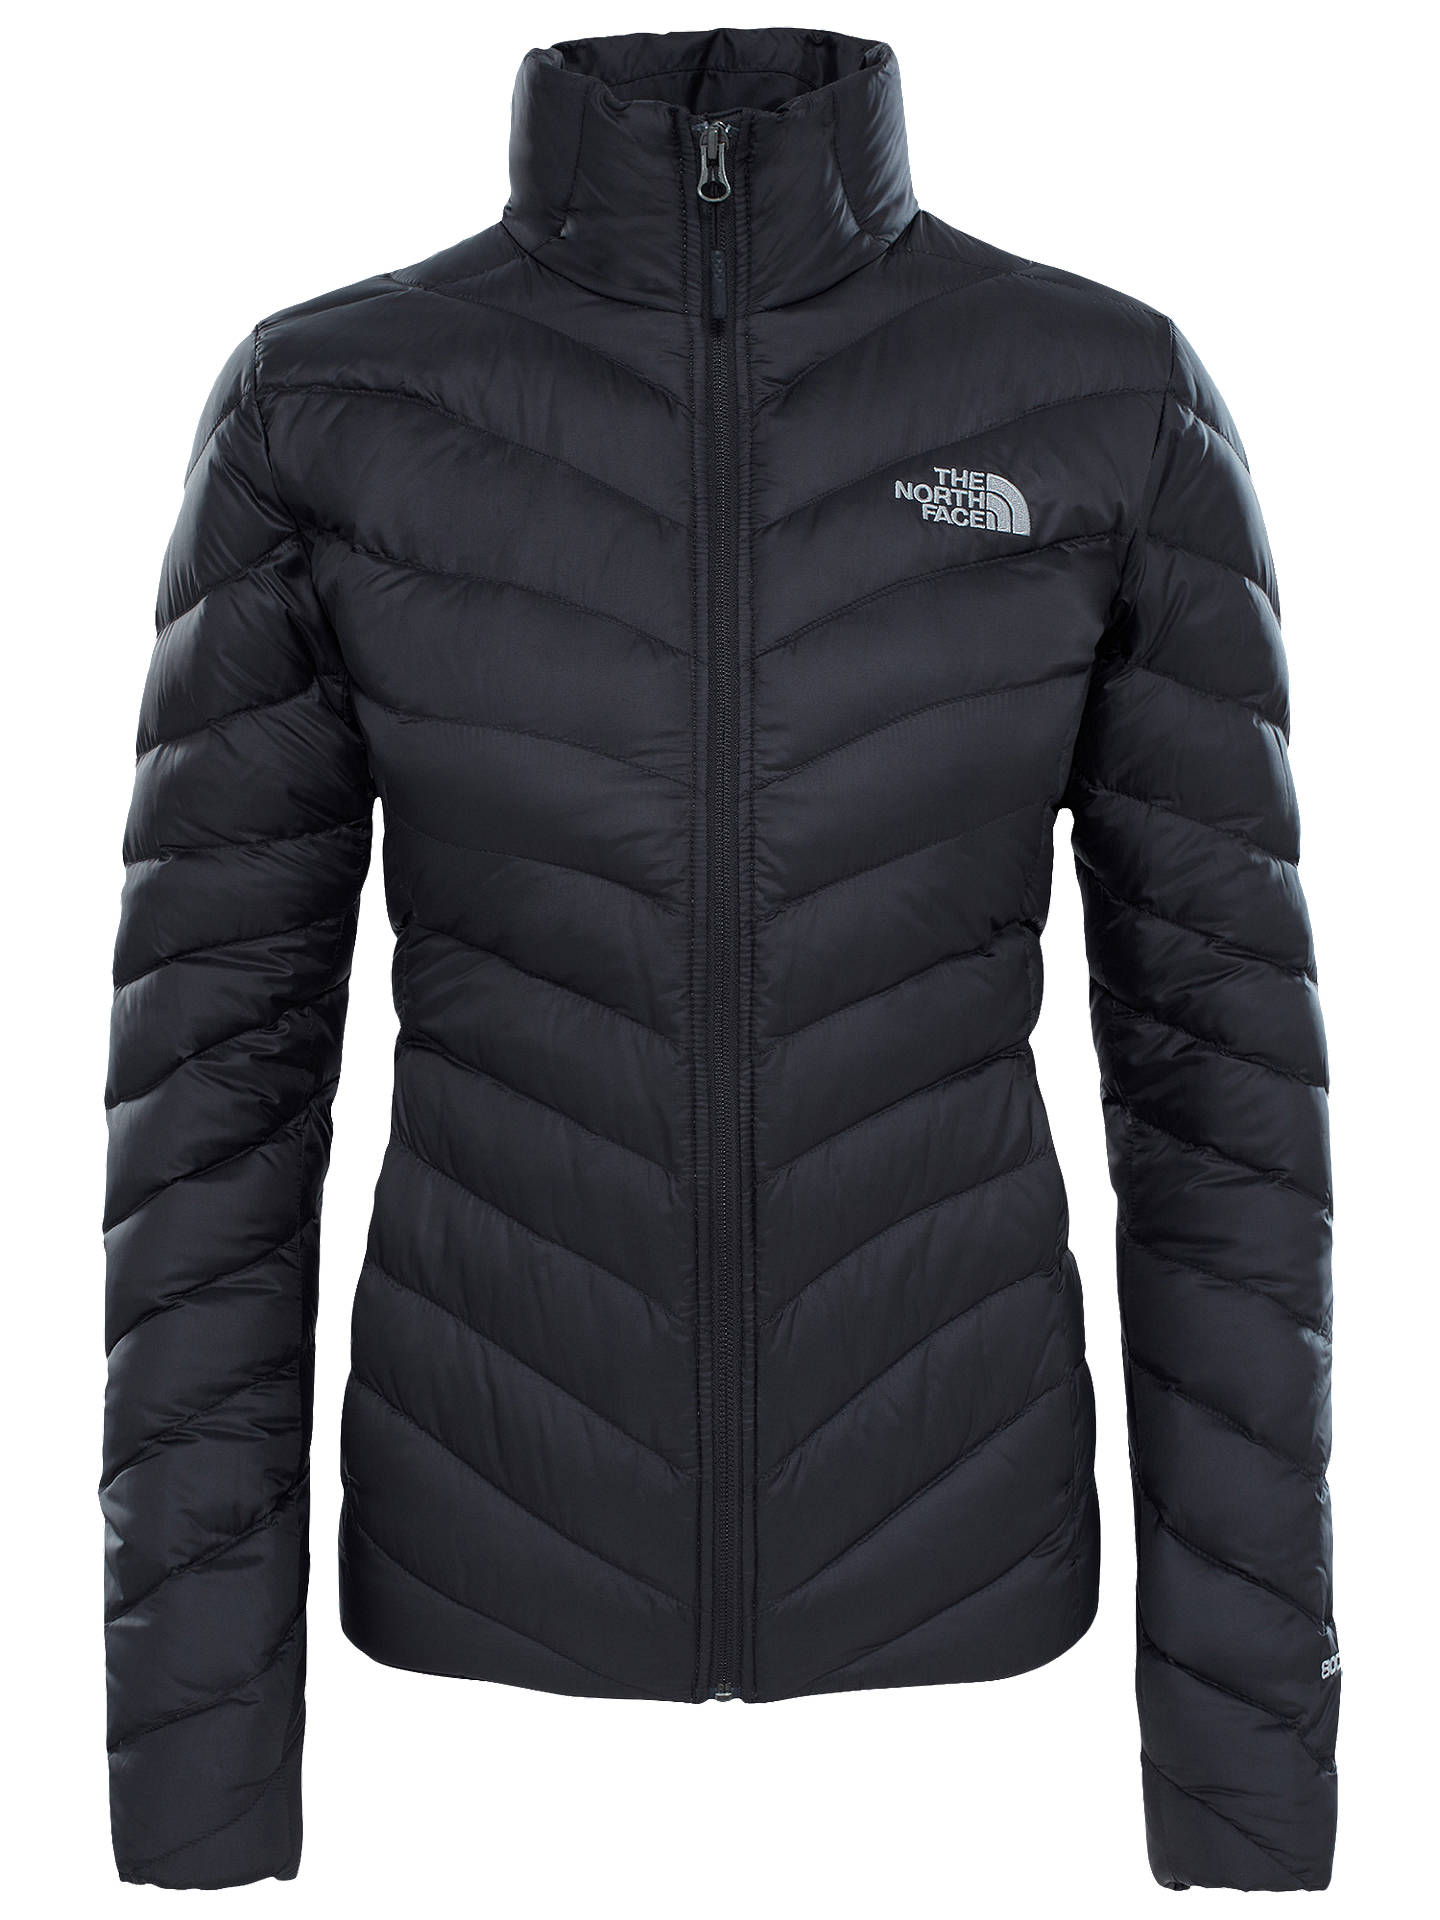 e8bc906e4210 The North Face Trevail Insulated Women s Jacket at John Lewis   Partners